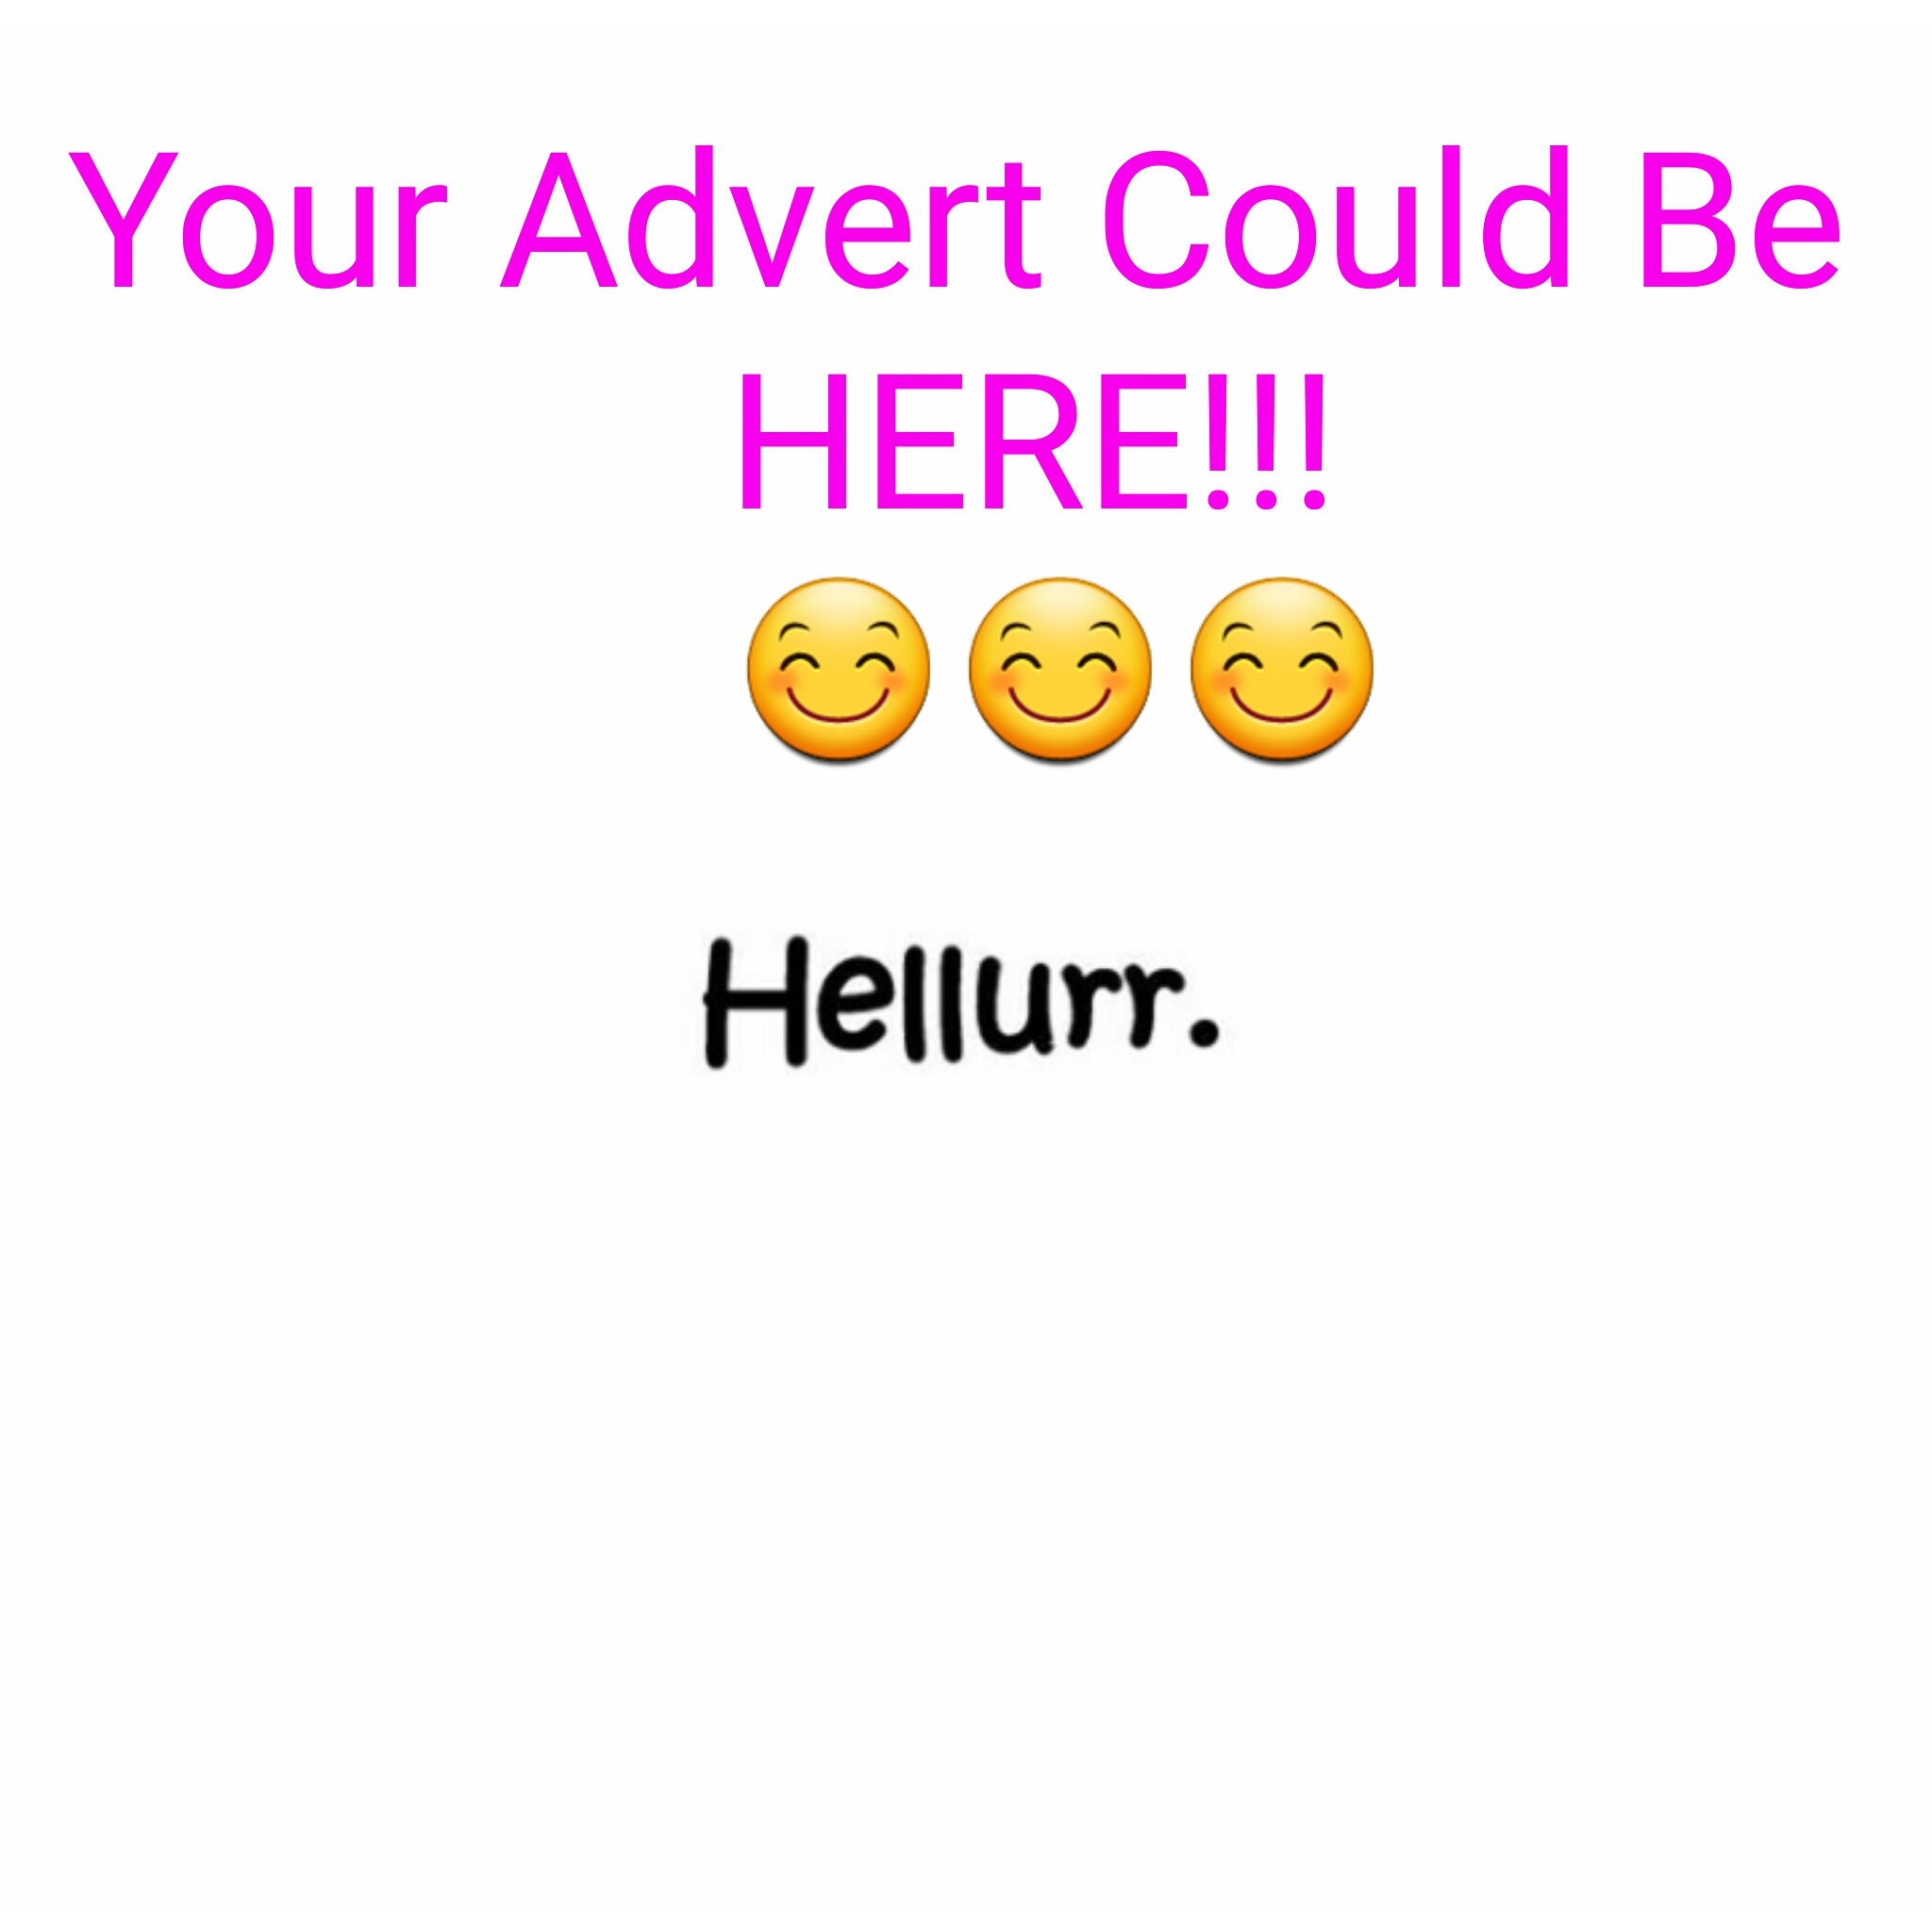 Hellurrrandom Advert image. please advertise here